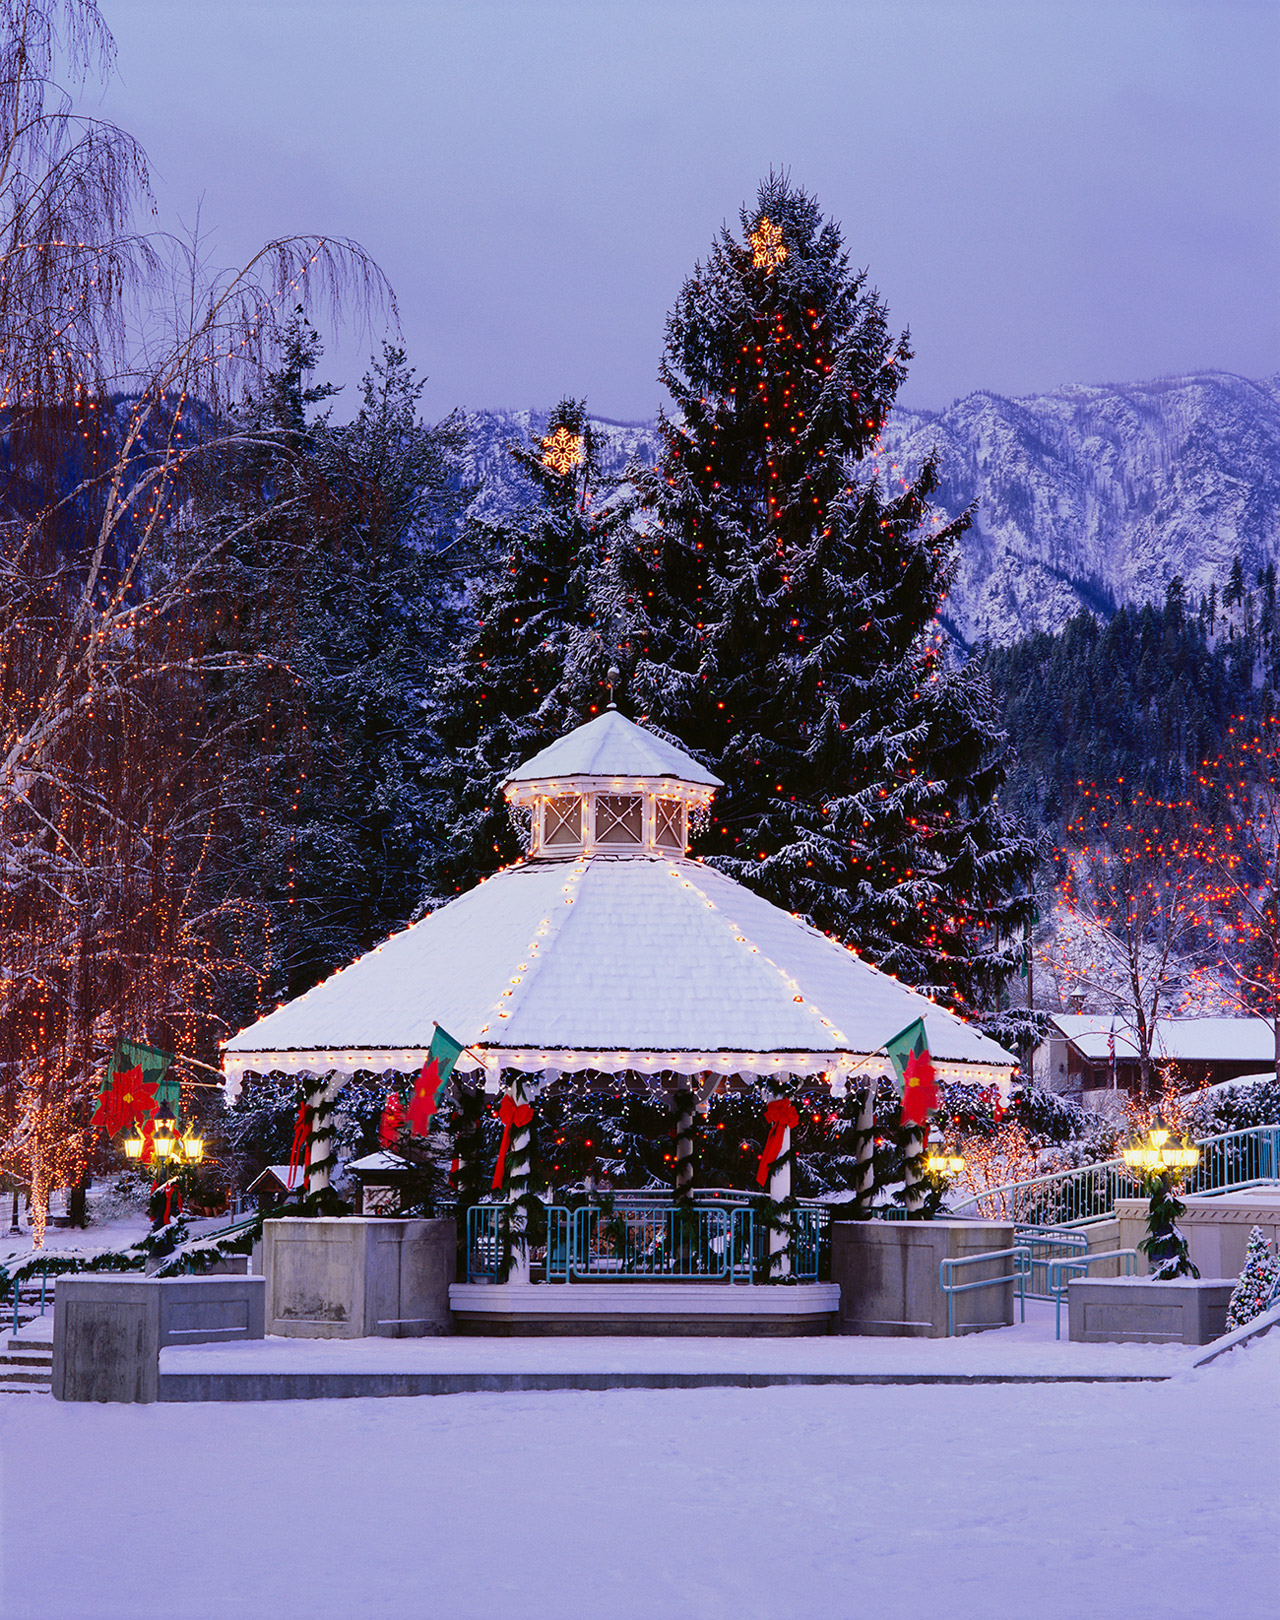 Leavenworth gazebo & large pine trees with lights